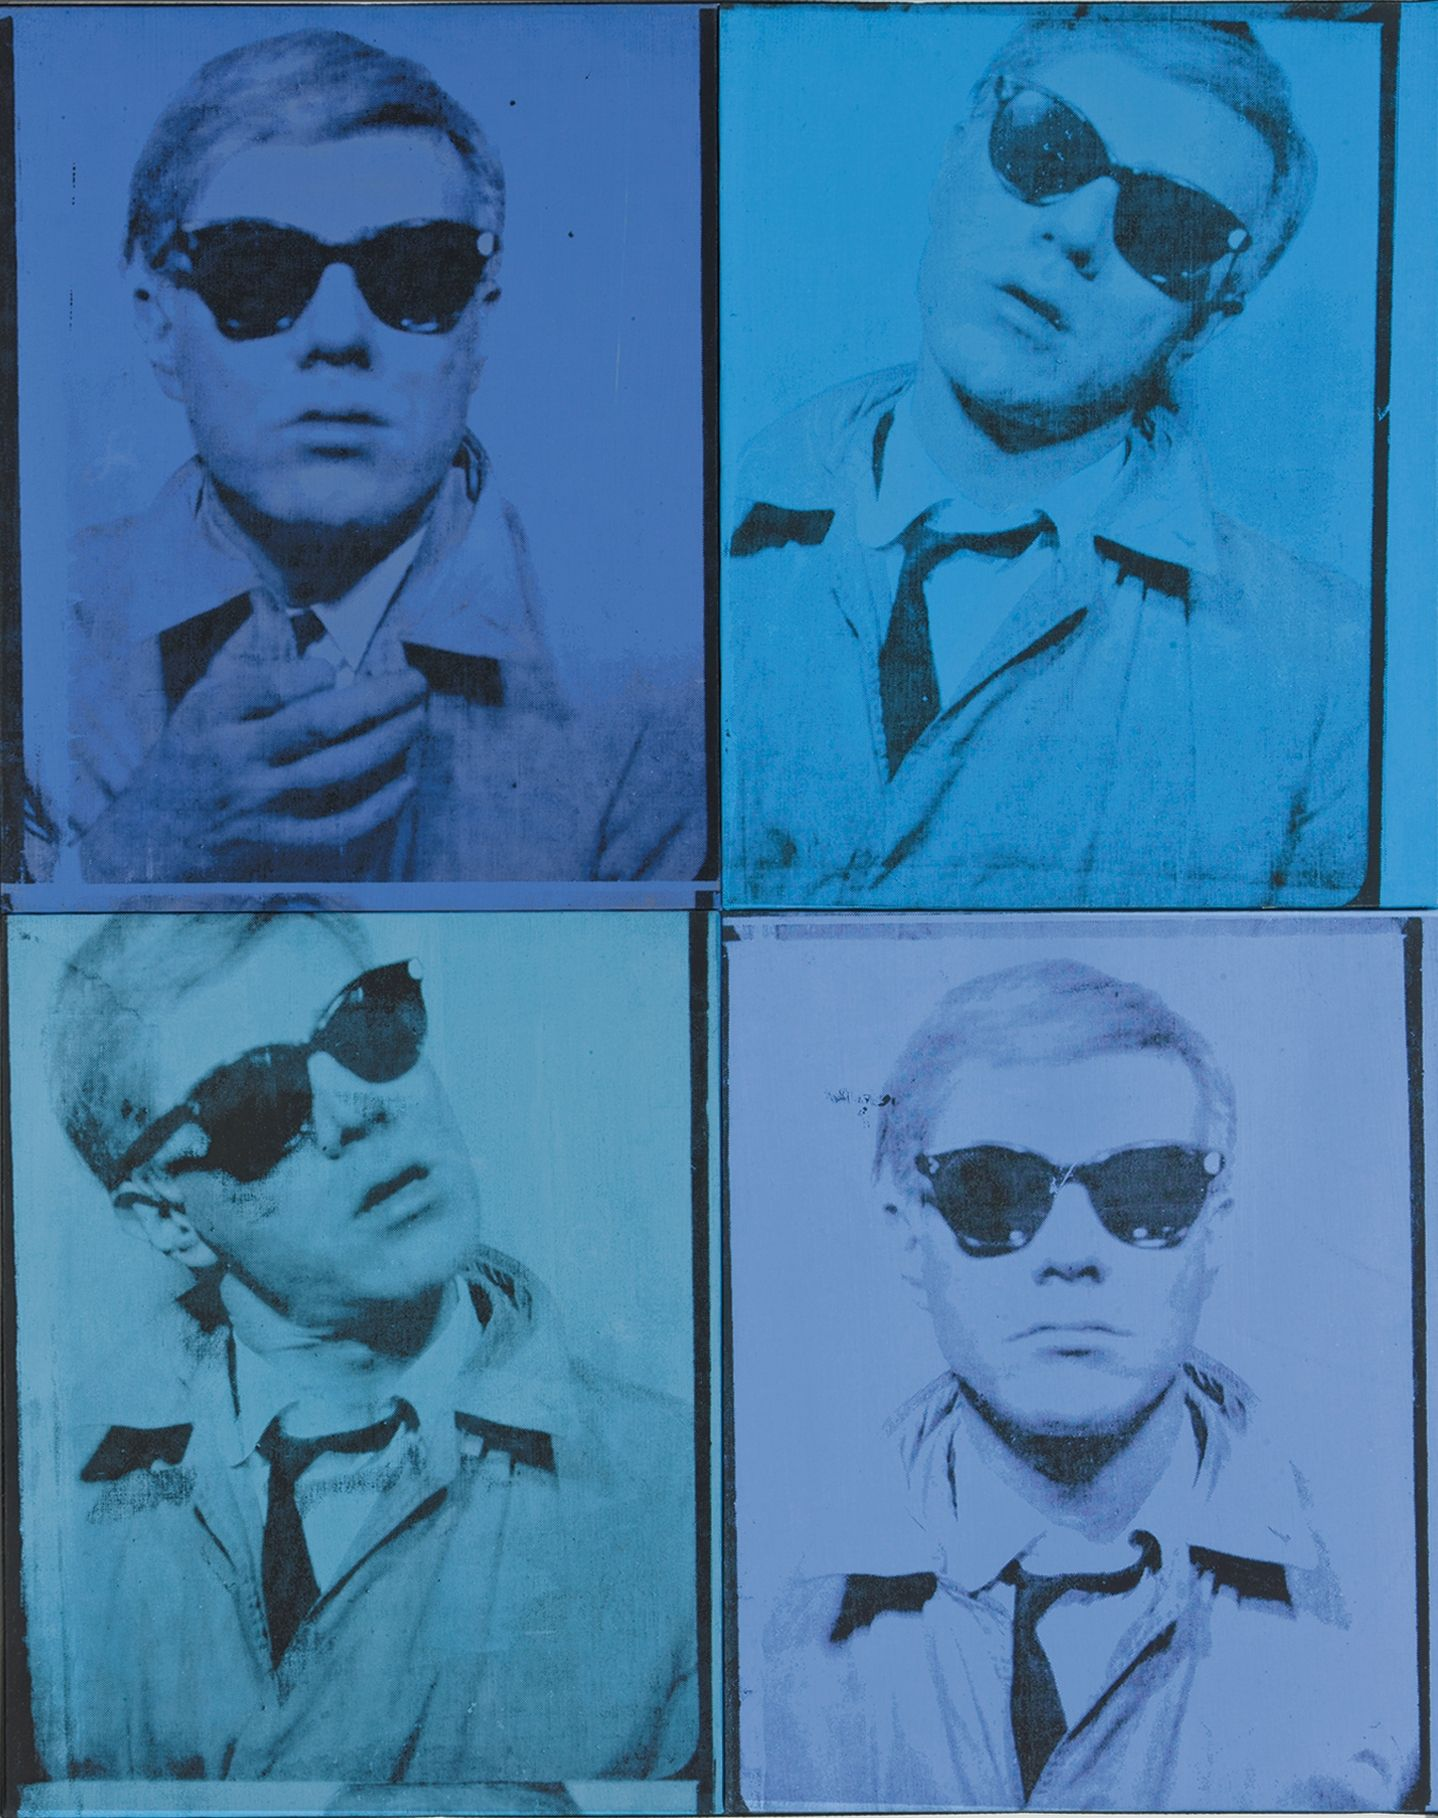 Self Portrait - Andy Warhol - 1963-1964